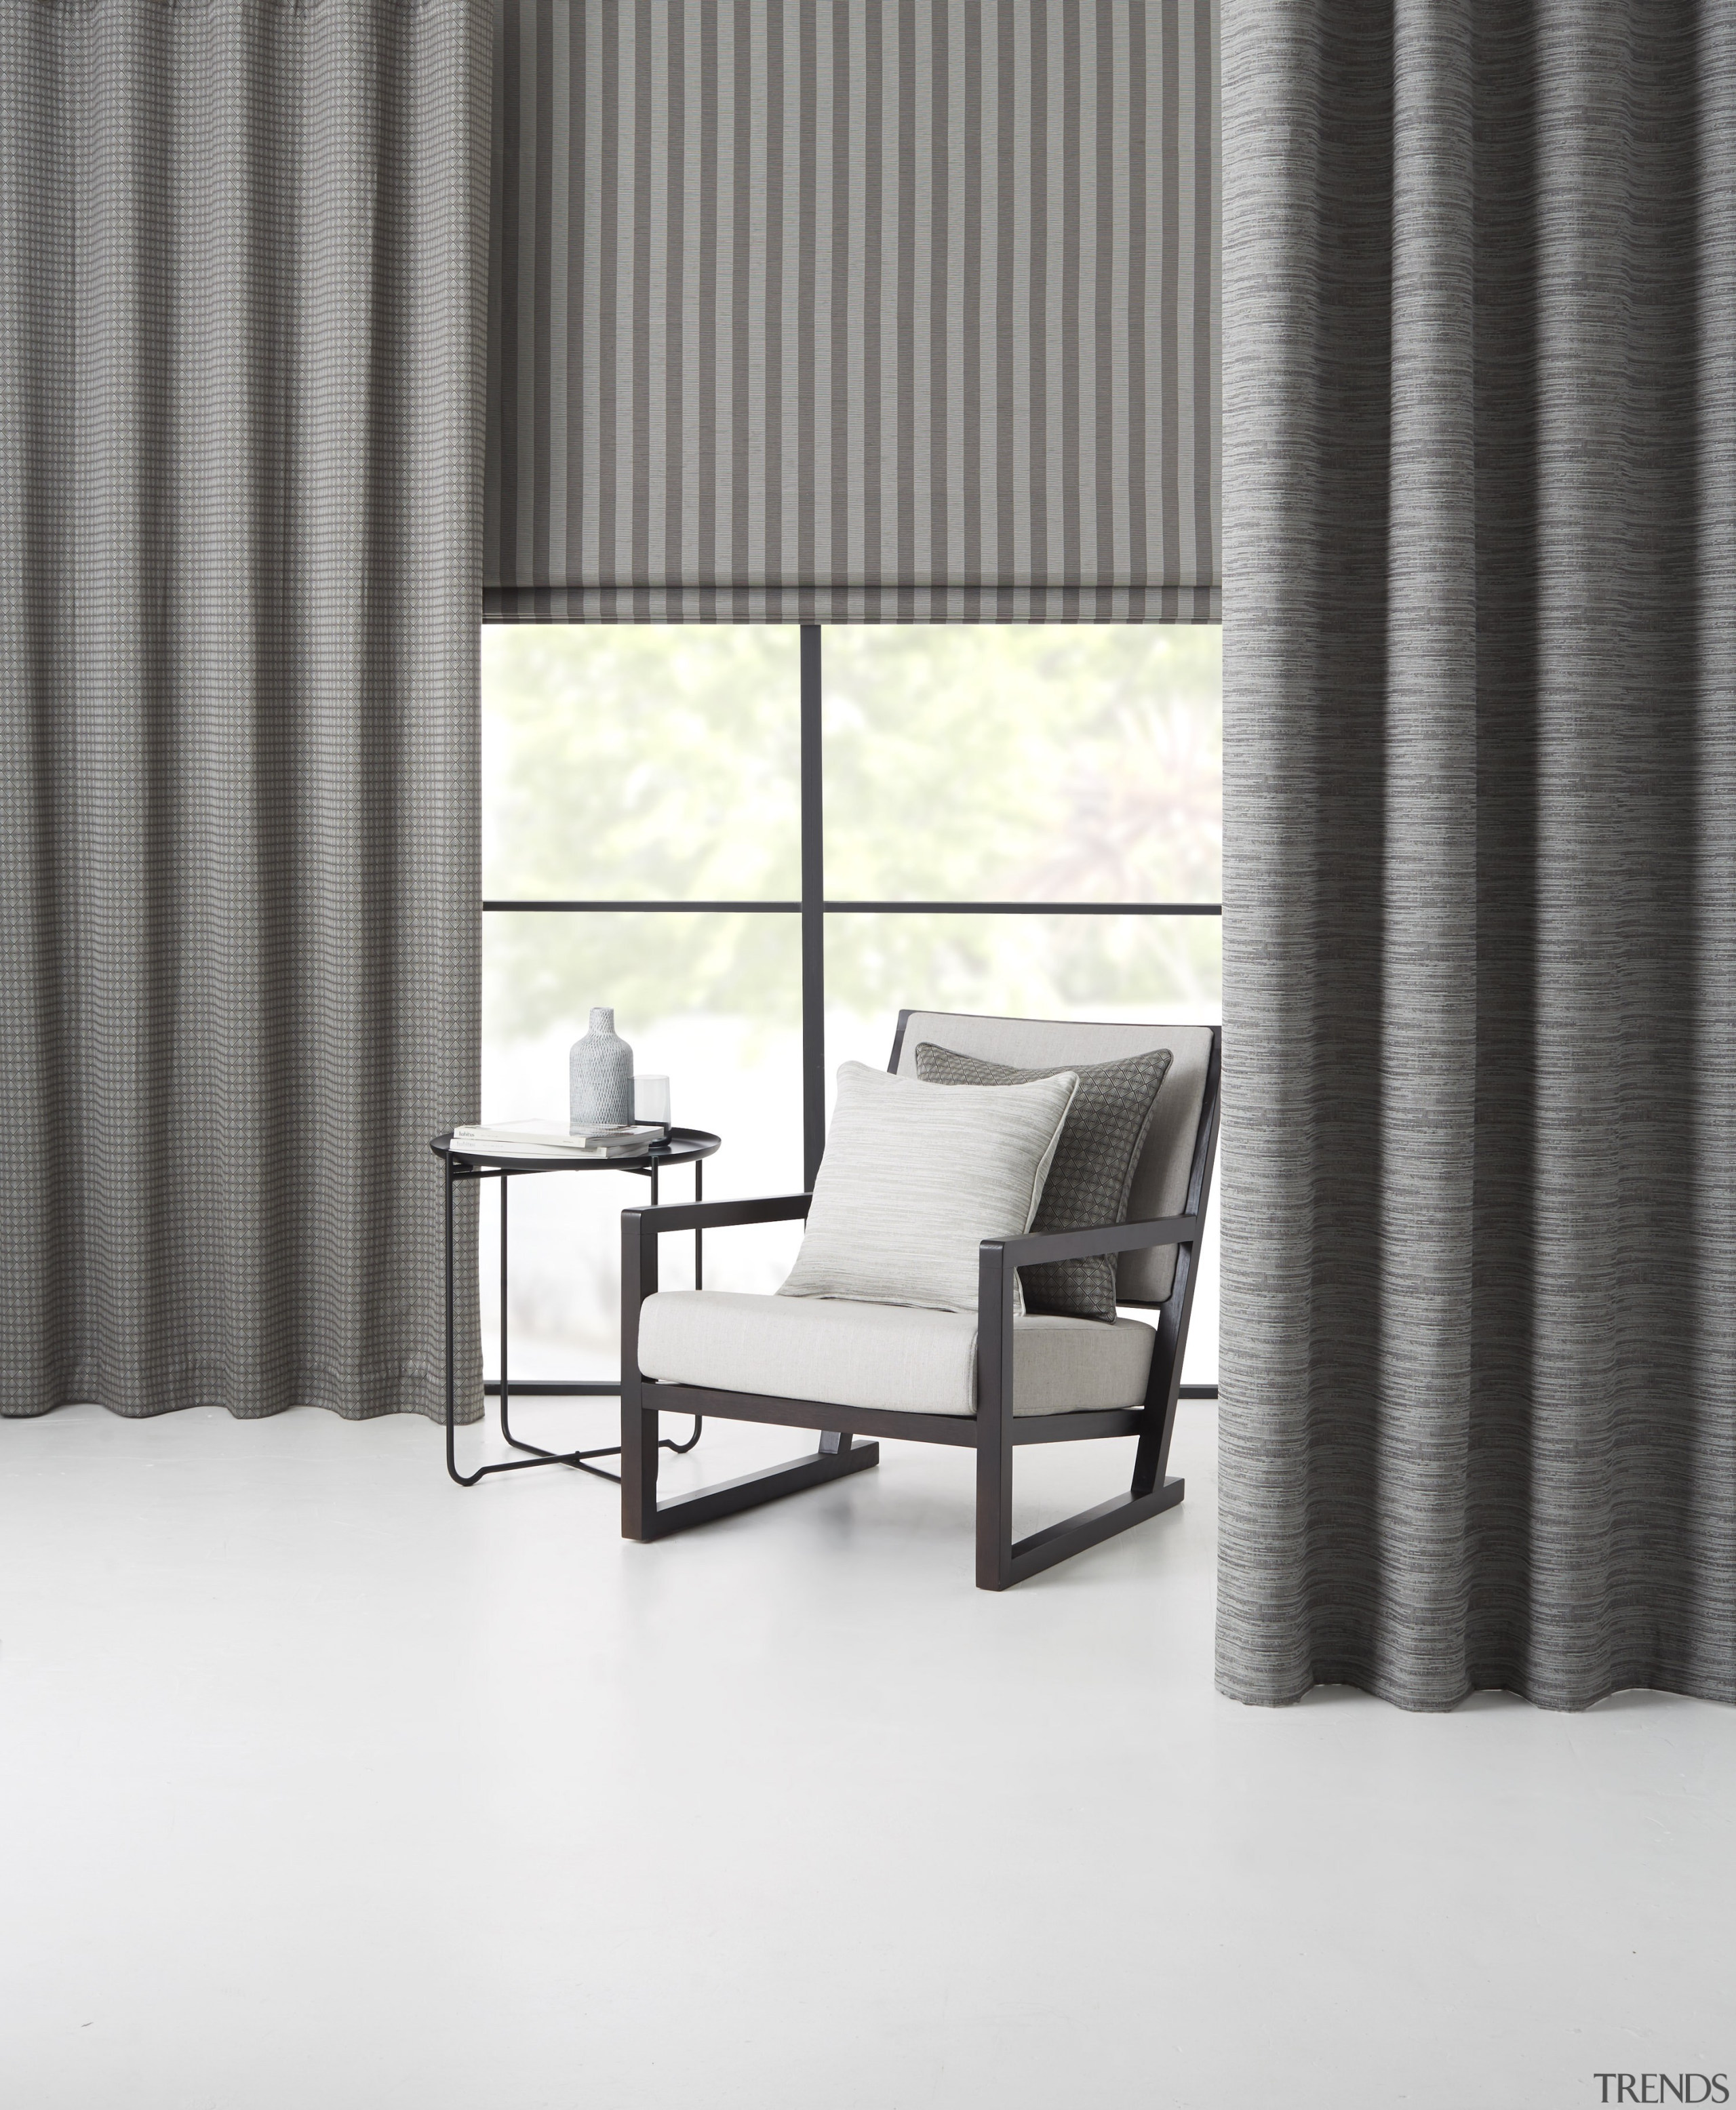 Summit 03 - chair | curtain | floor chair, curtain, floor, furniture, interior design, shade, table, textile, wall, window, window blind, window covering, window treatment, white, gray